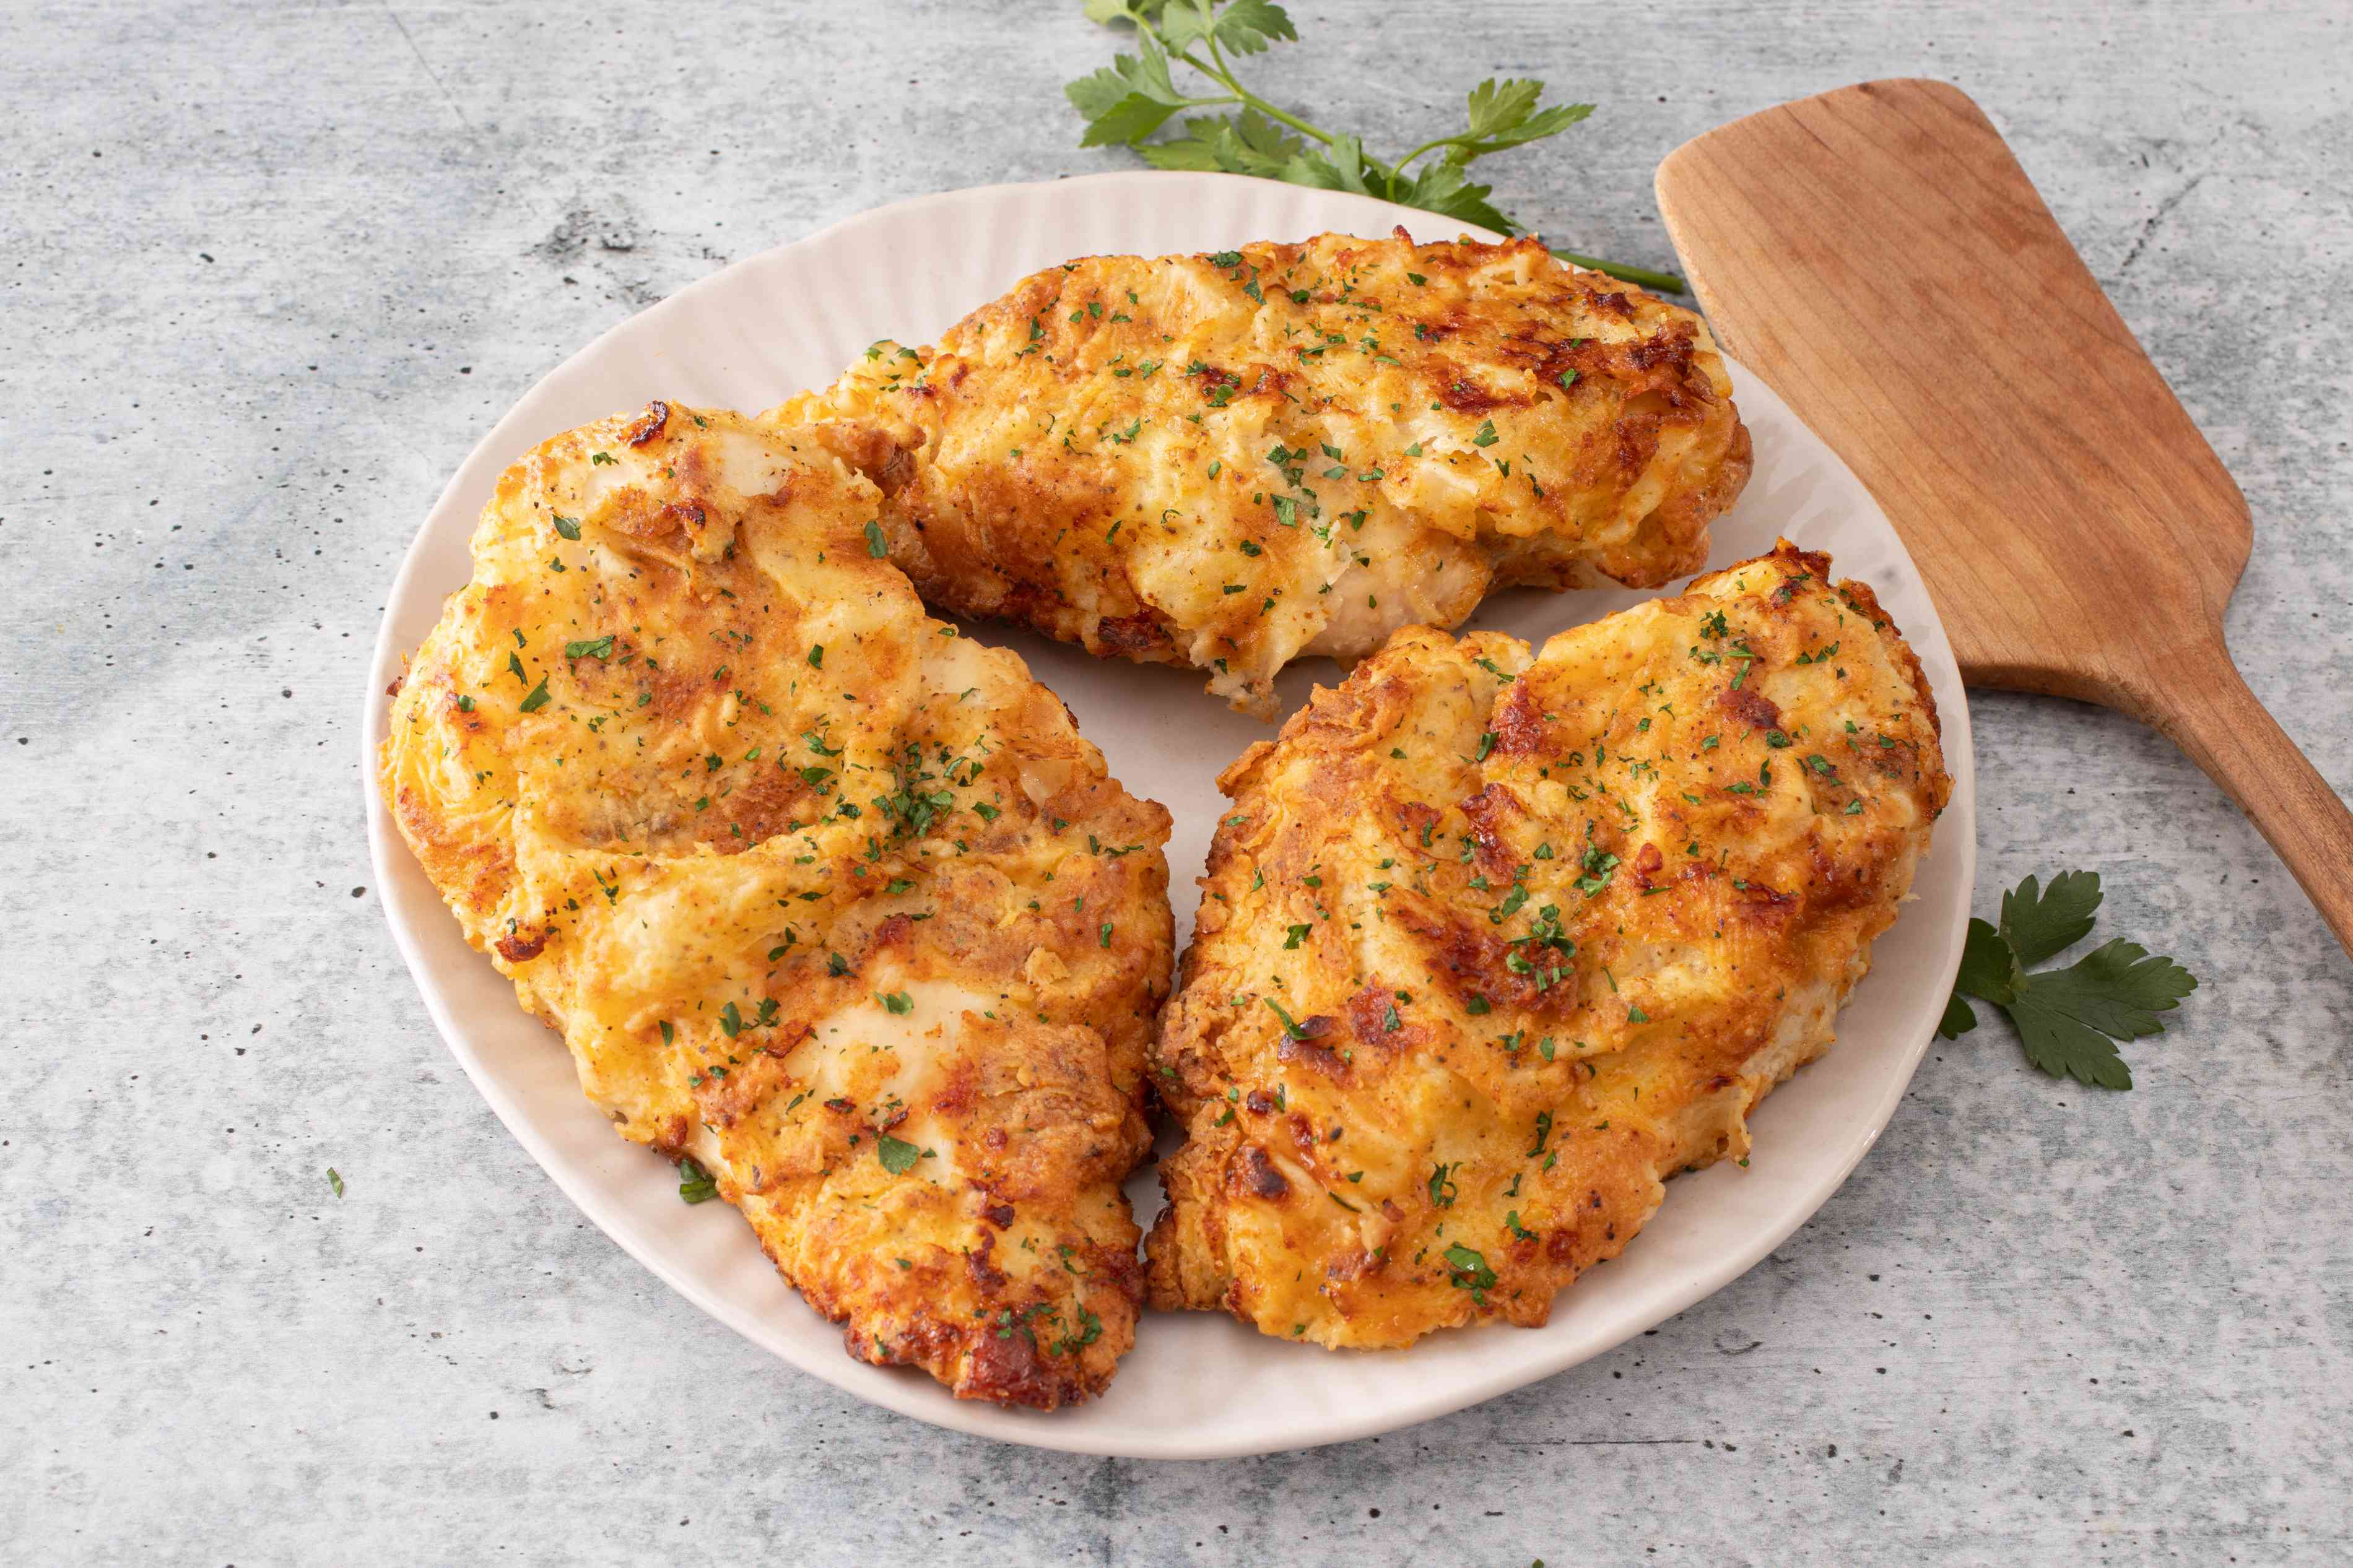 Air fryer chicken breasts, fried, on a plate garnished with parsley